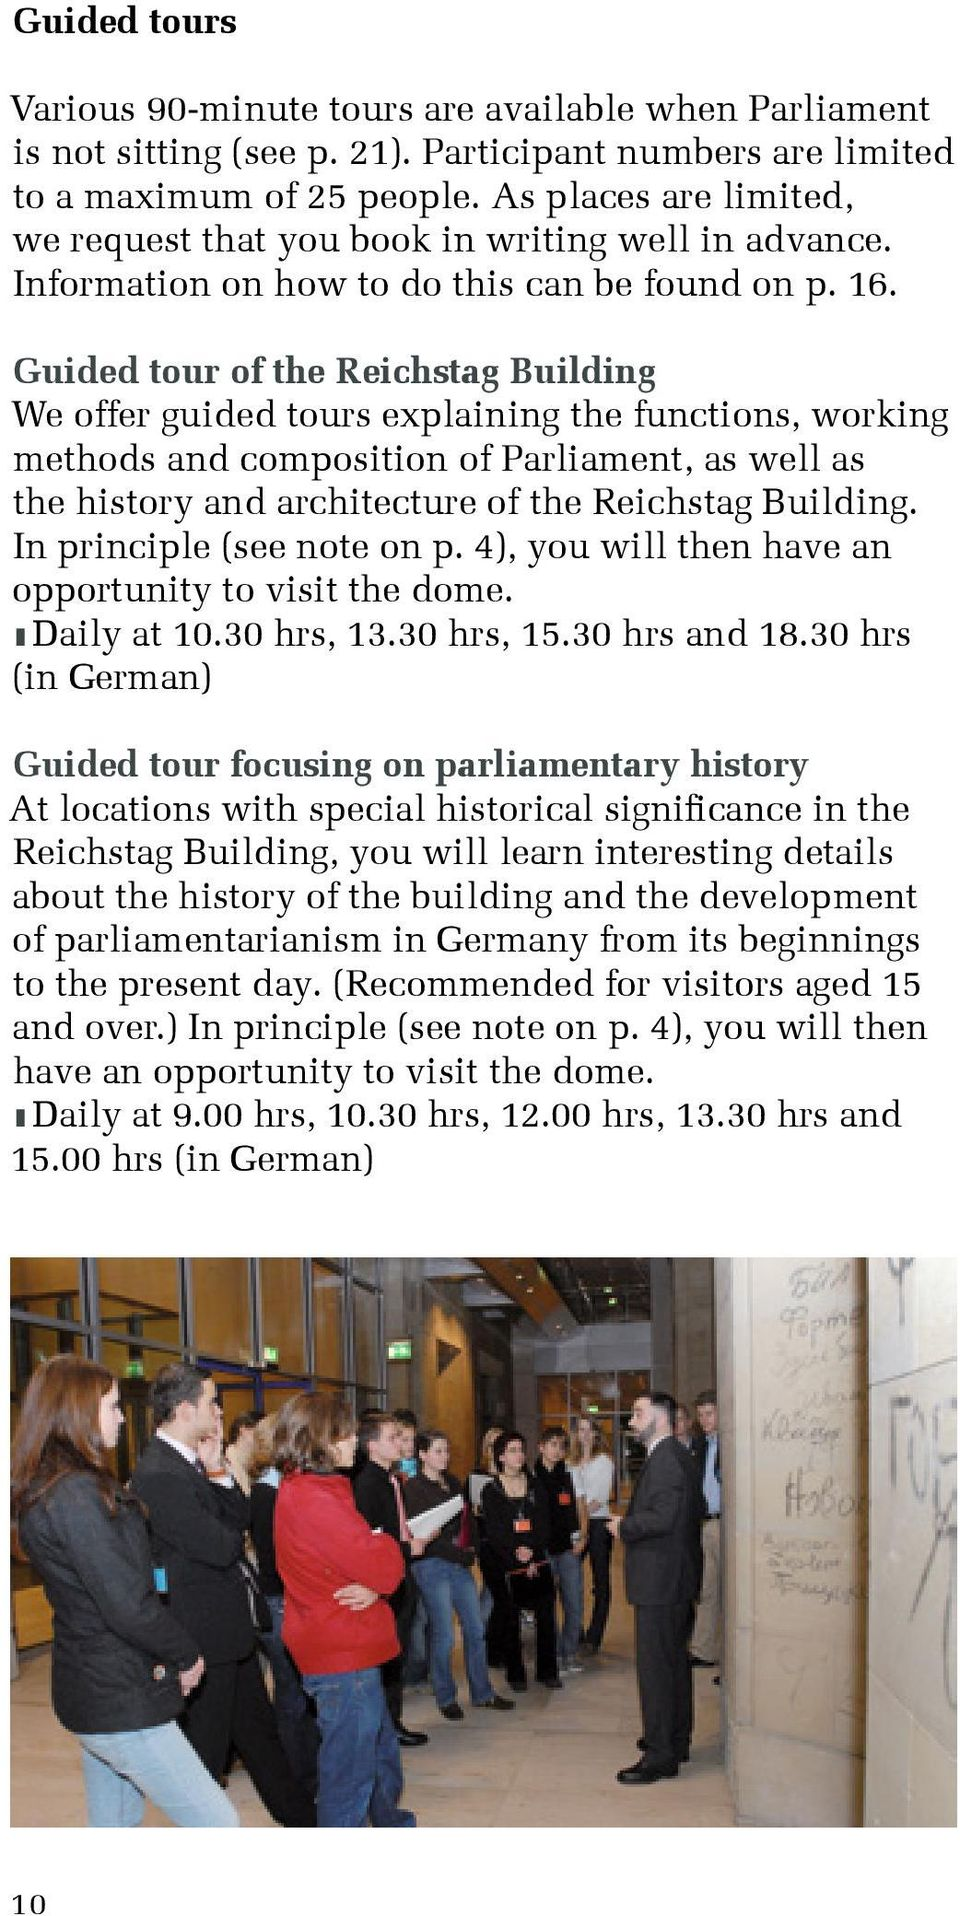 Guided tour of the Reichstag Building We offer guided tours explaining the functions, working methods and composition of Parliament, as well as the history and architecture of the Reichstag Building.